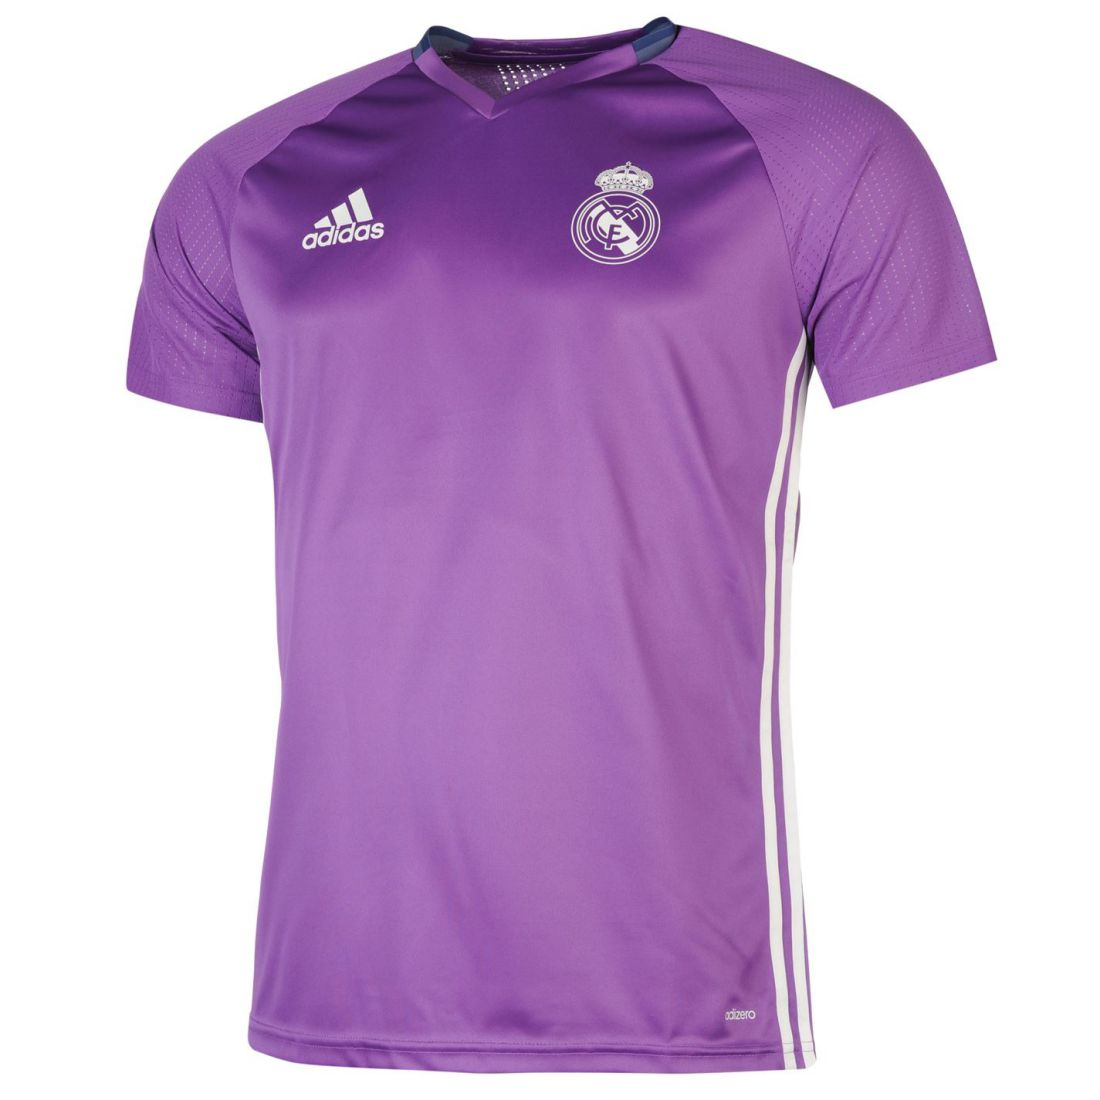 adidas Mens Real Madrid T Shirt Short Sleeve V Neck Football Sports  Training Top Purple L. About this product. Picture 1 of 5  Picture 2 of 5   Picture 3 of ... 75c9e793c